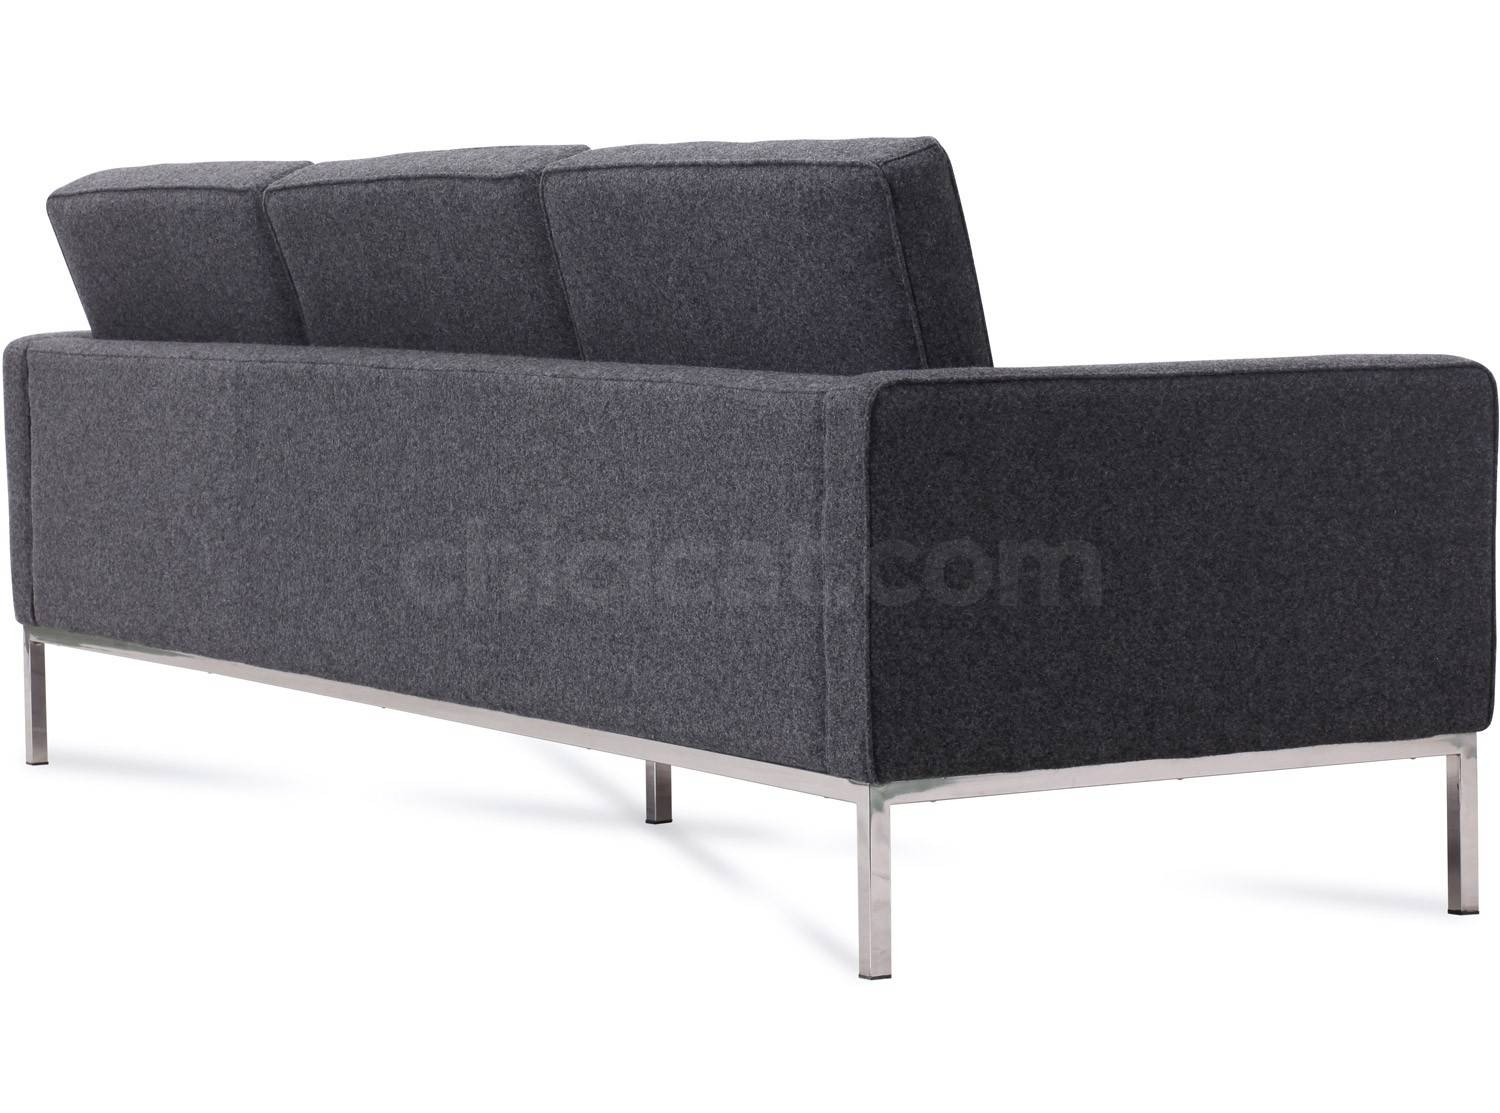 Florence Knoll Sofa pertaining to Florence Knoll 3 Seater Sofas (Image 19 of 30)